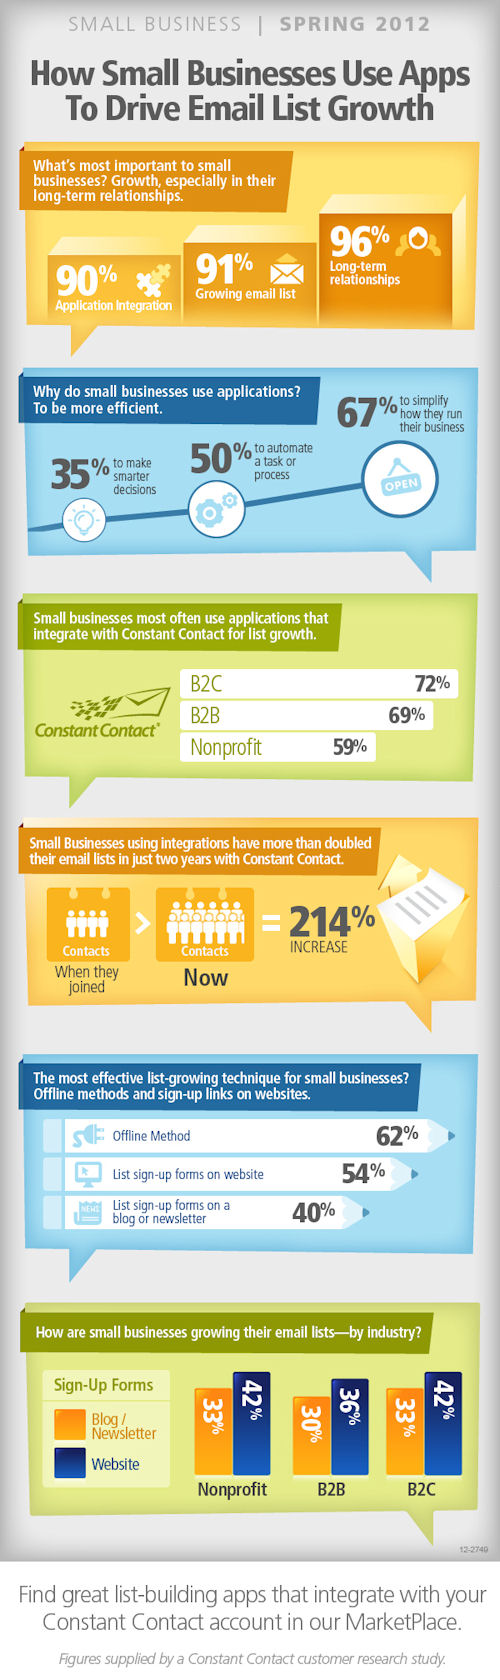 How Small Businesses Use Apps for Email Marketing